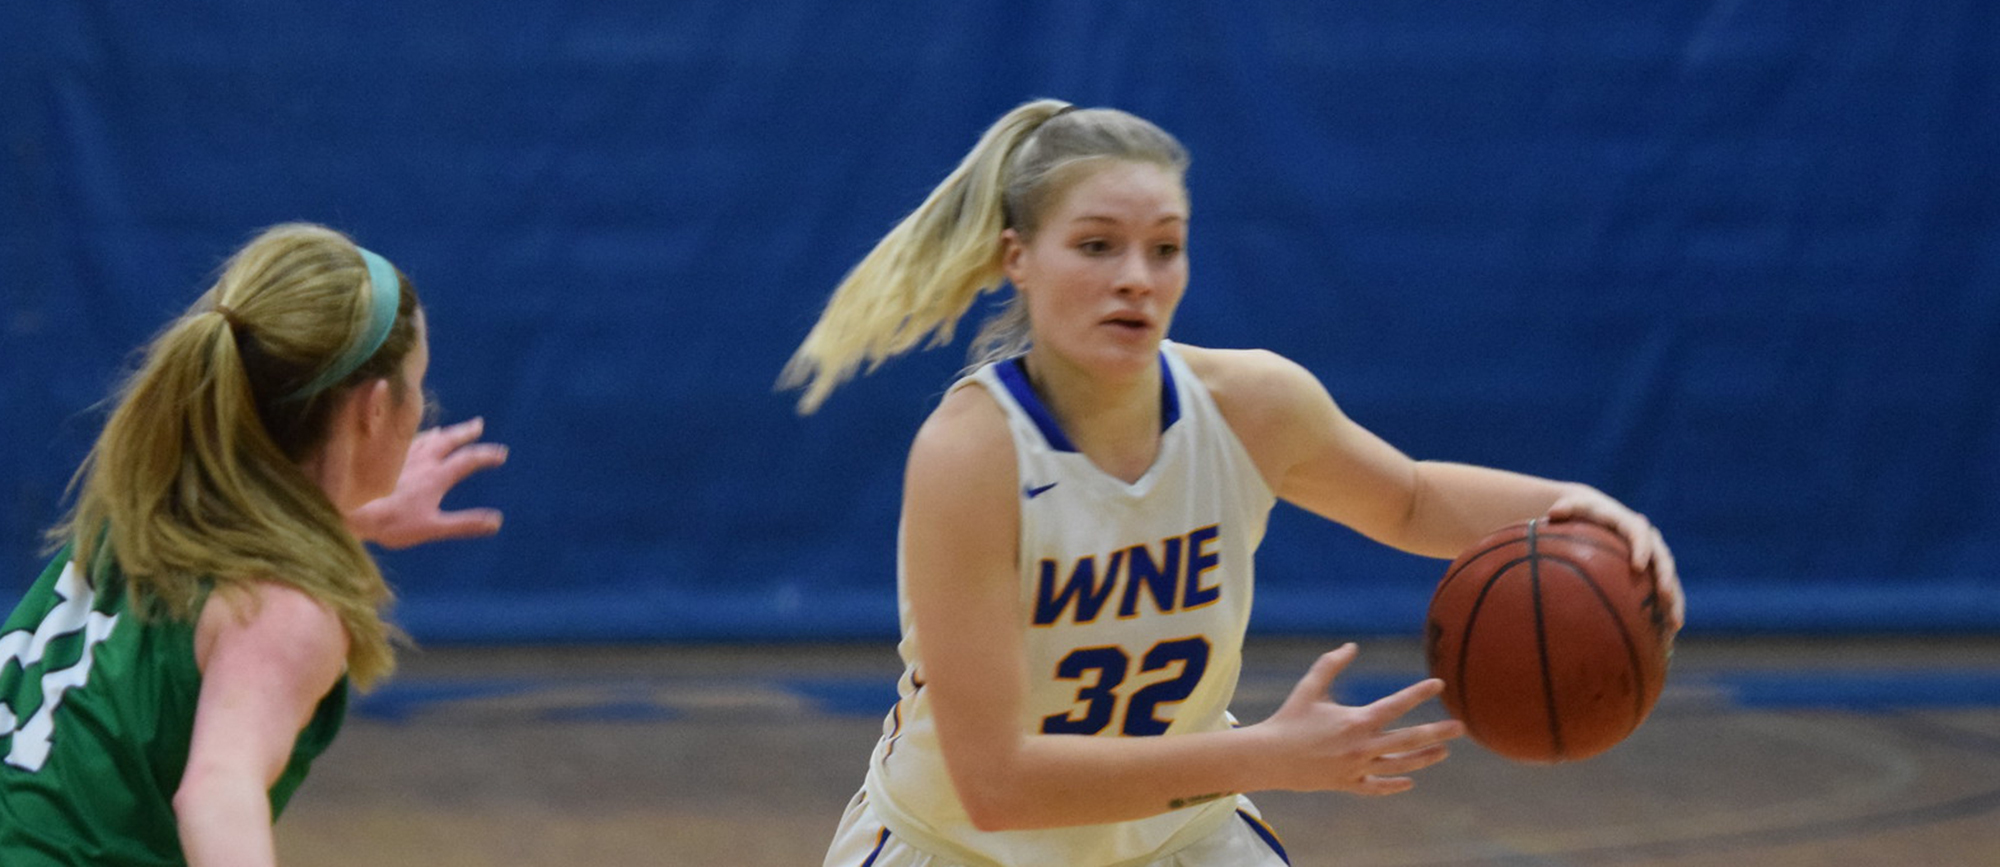 Courtney Carlson scored 22 points in the win over Endicott on Saturday. (Photo by Rachael Margossian)